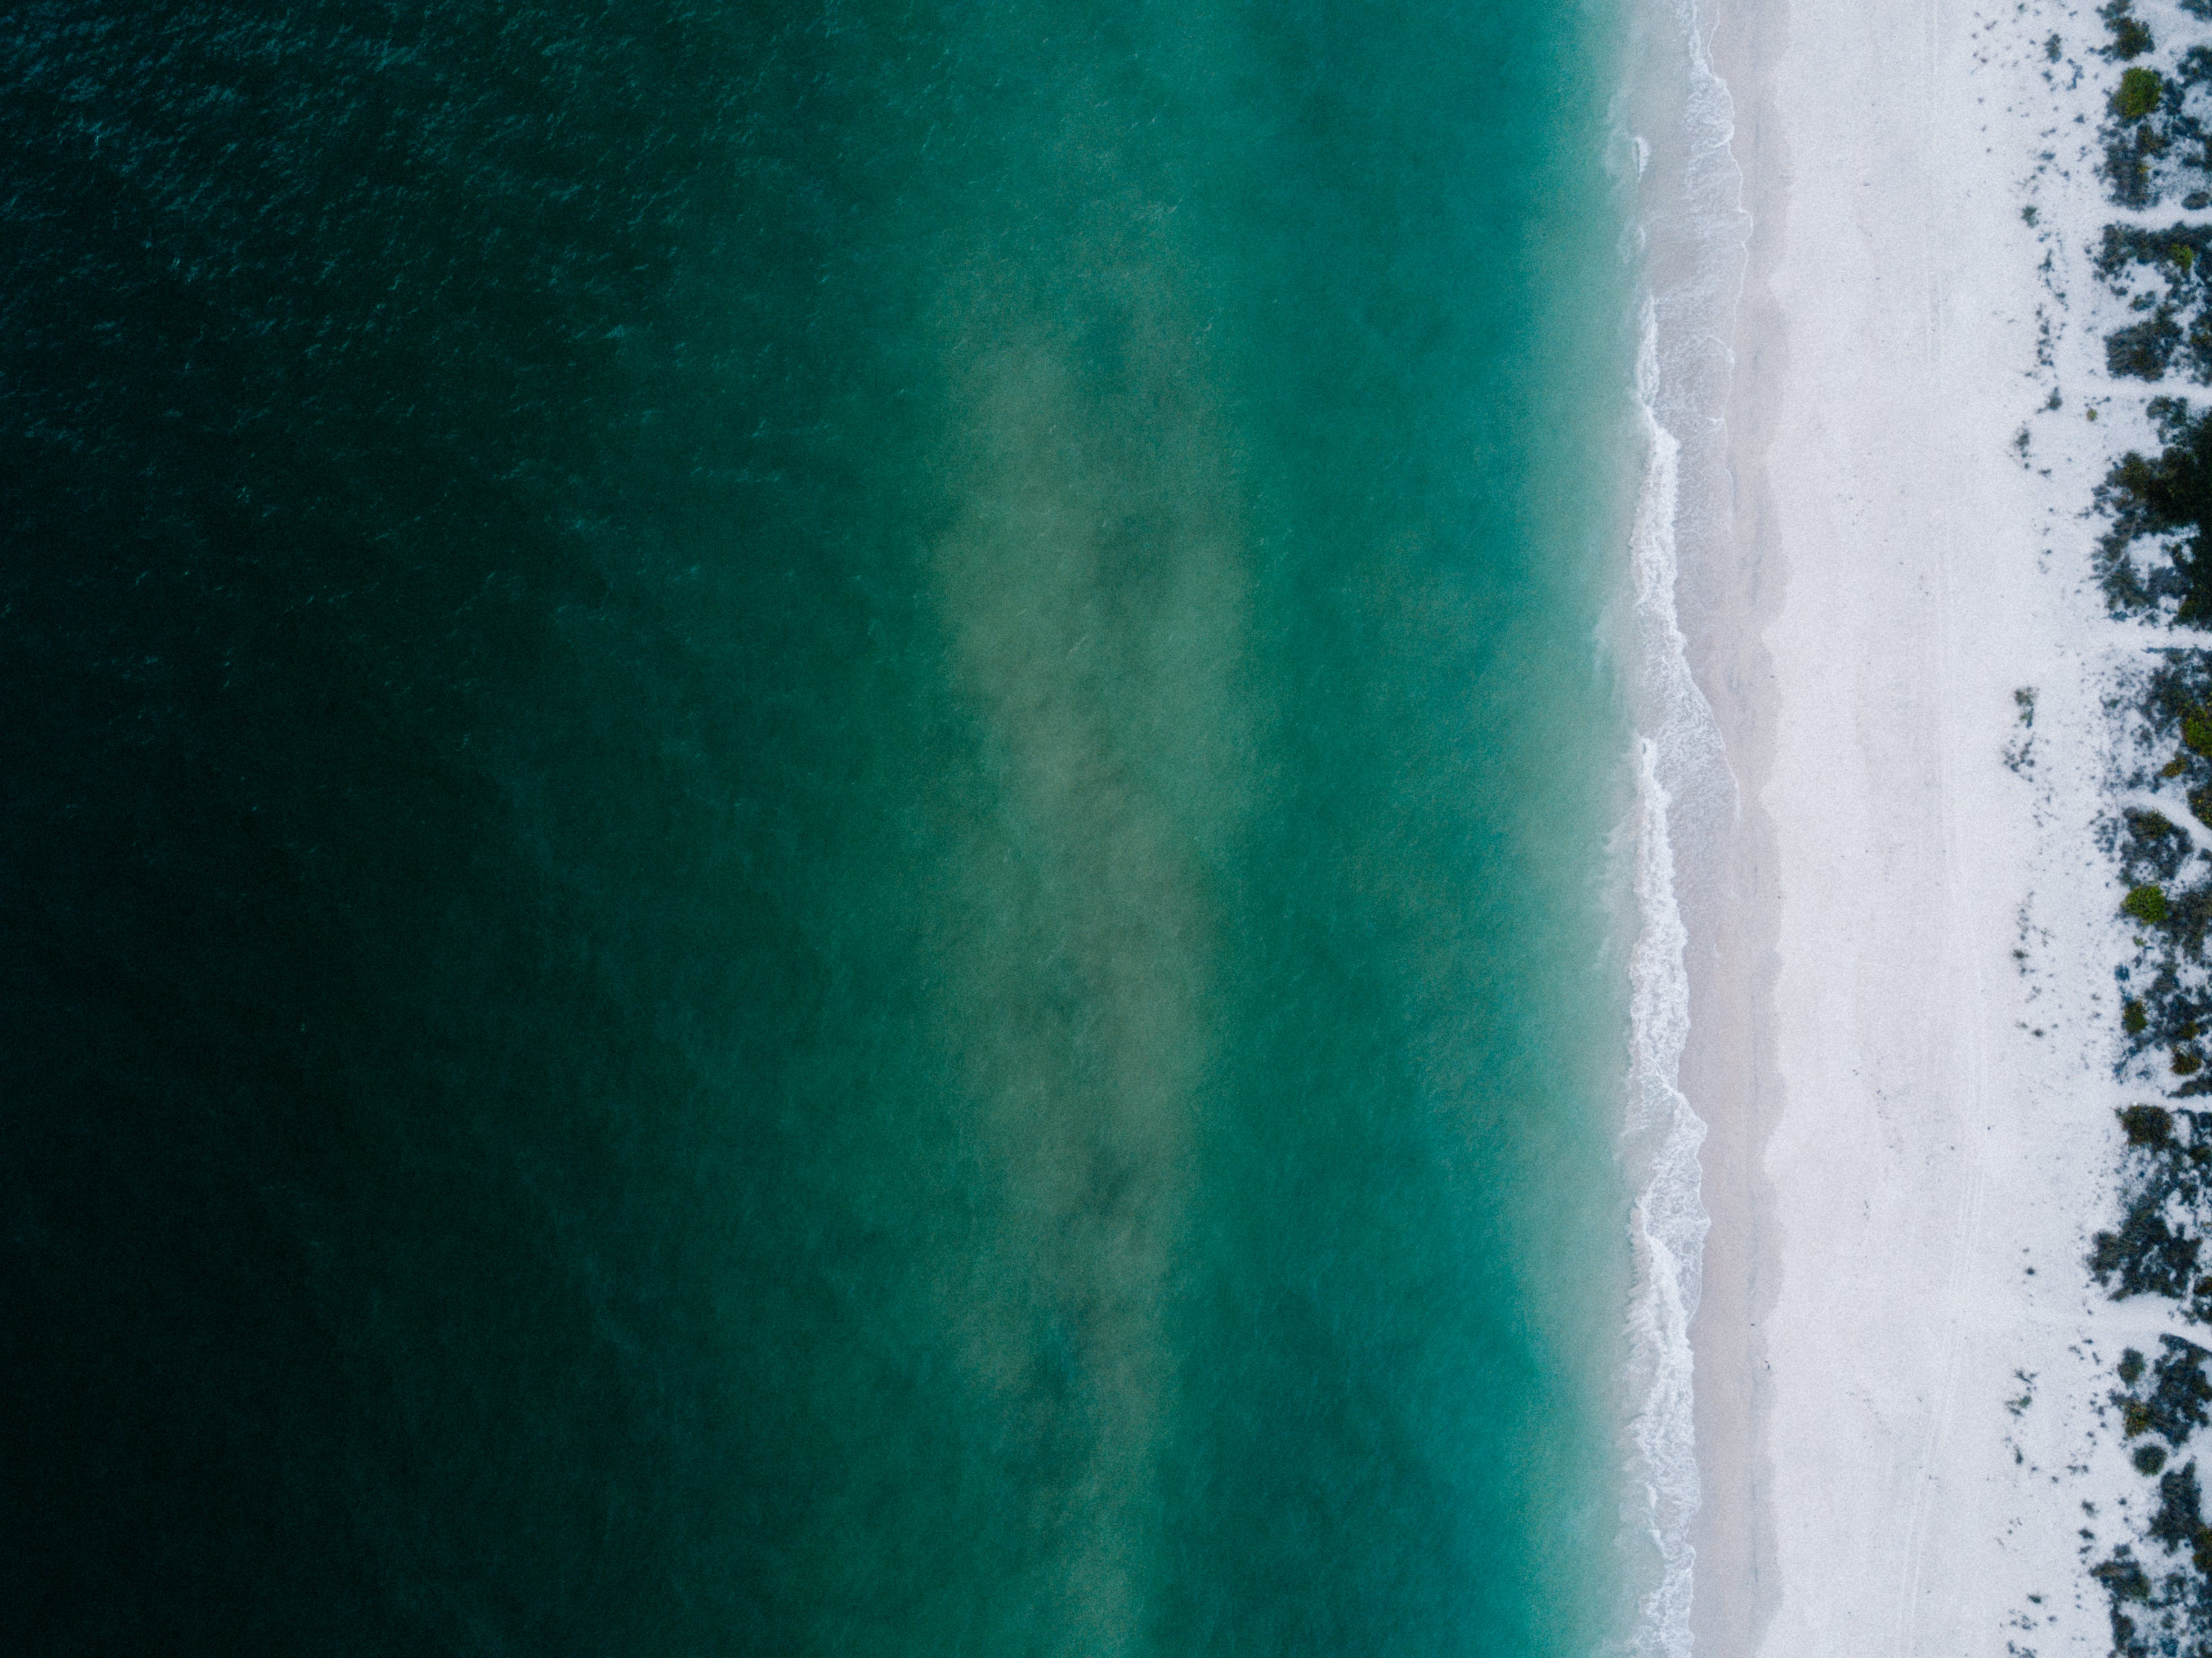 Teal and White Body of Water Wallpaper